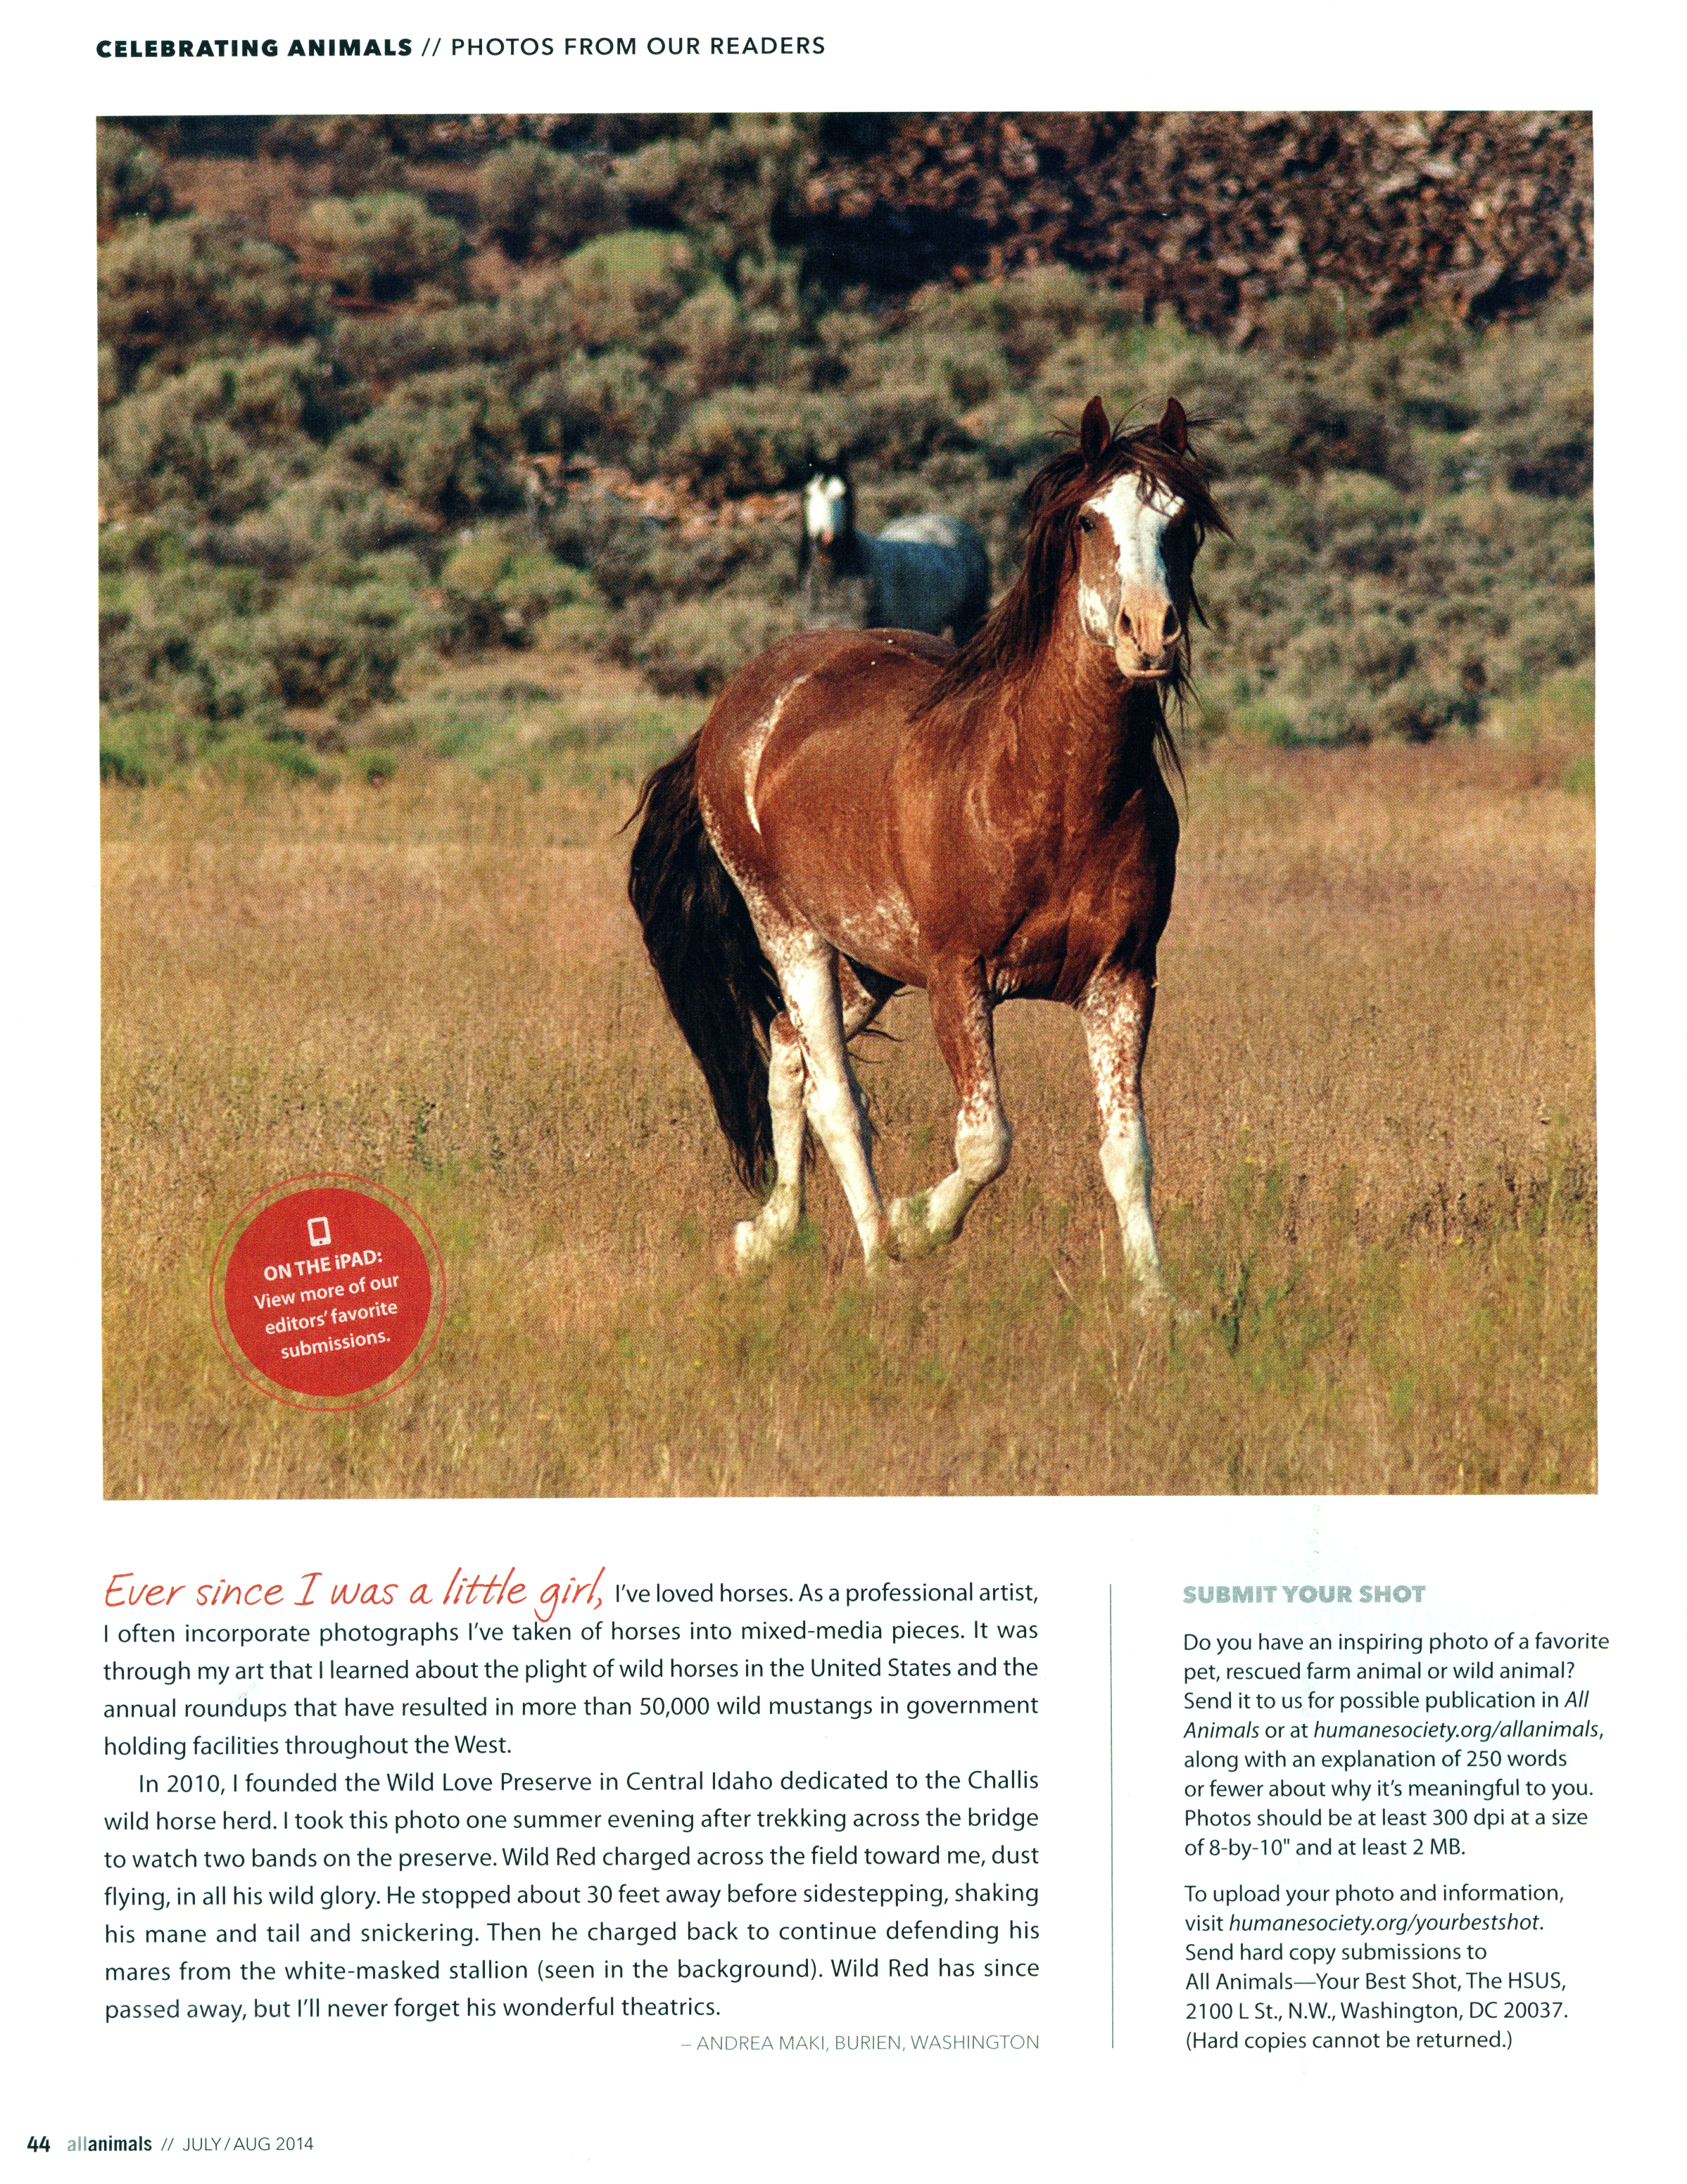 All Animals Magazine, Summer 2014, featuring Wild Red and the White Mask Stallion.   Photo: Andrea Maki 2012